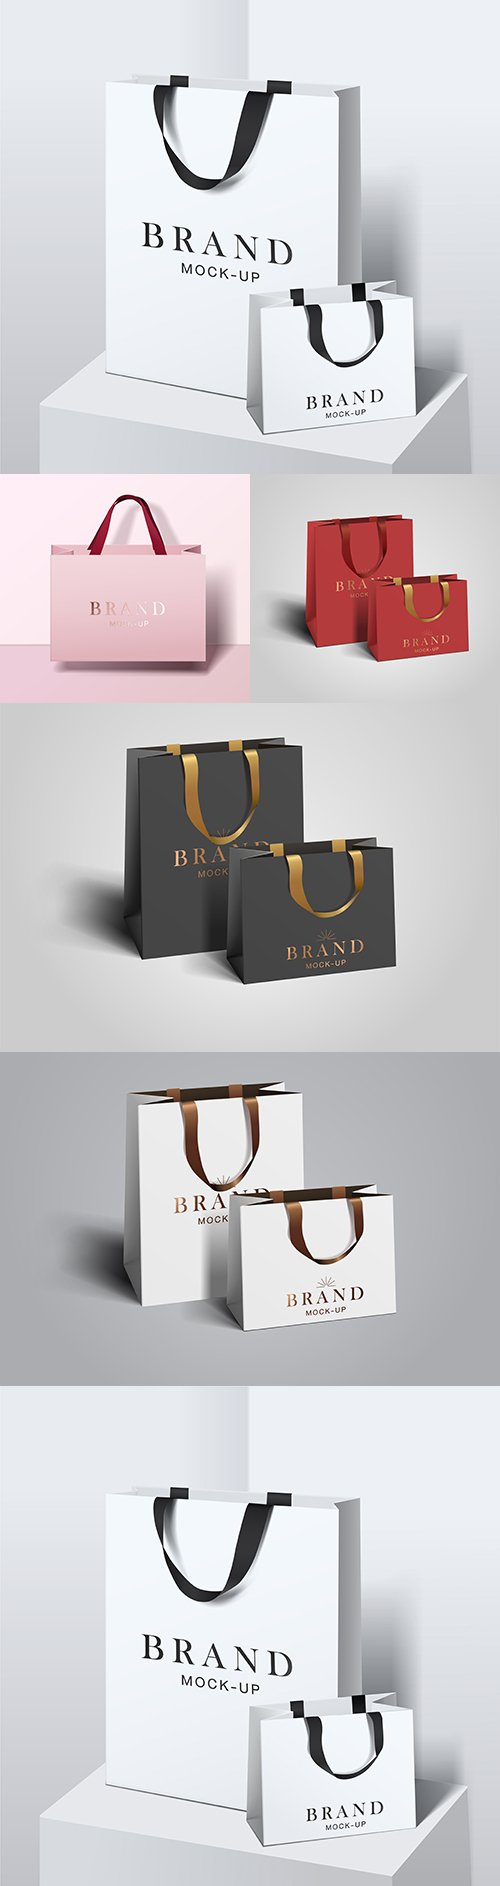 Bag for shopping empty paper bags branded template